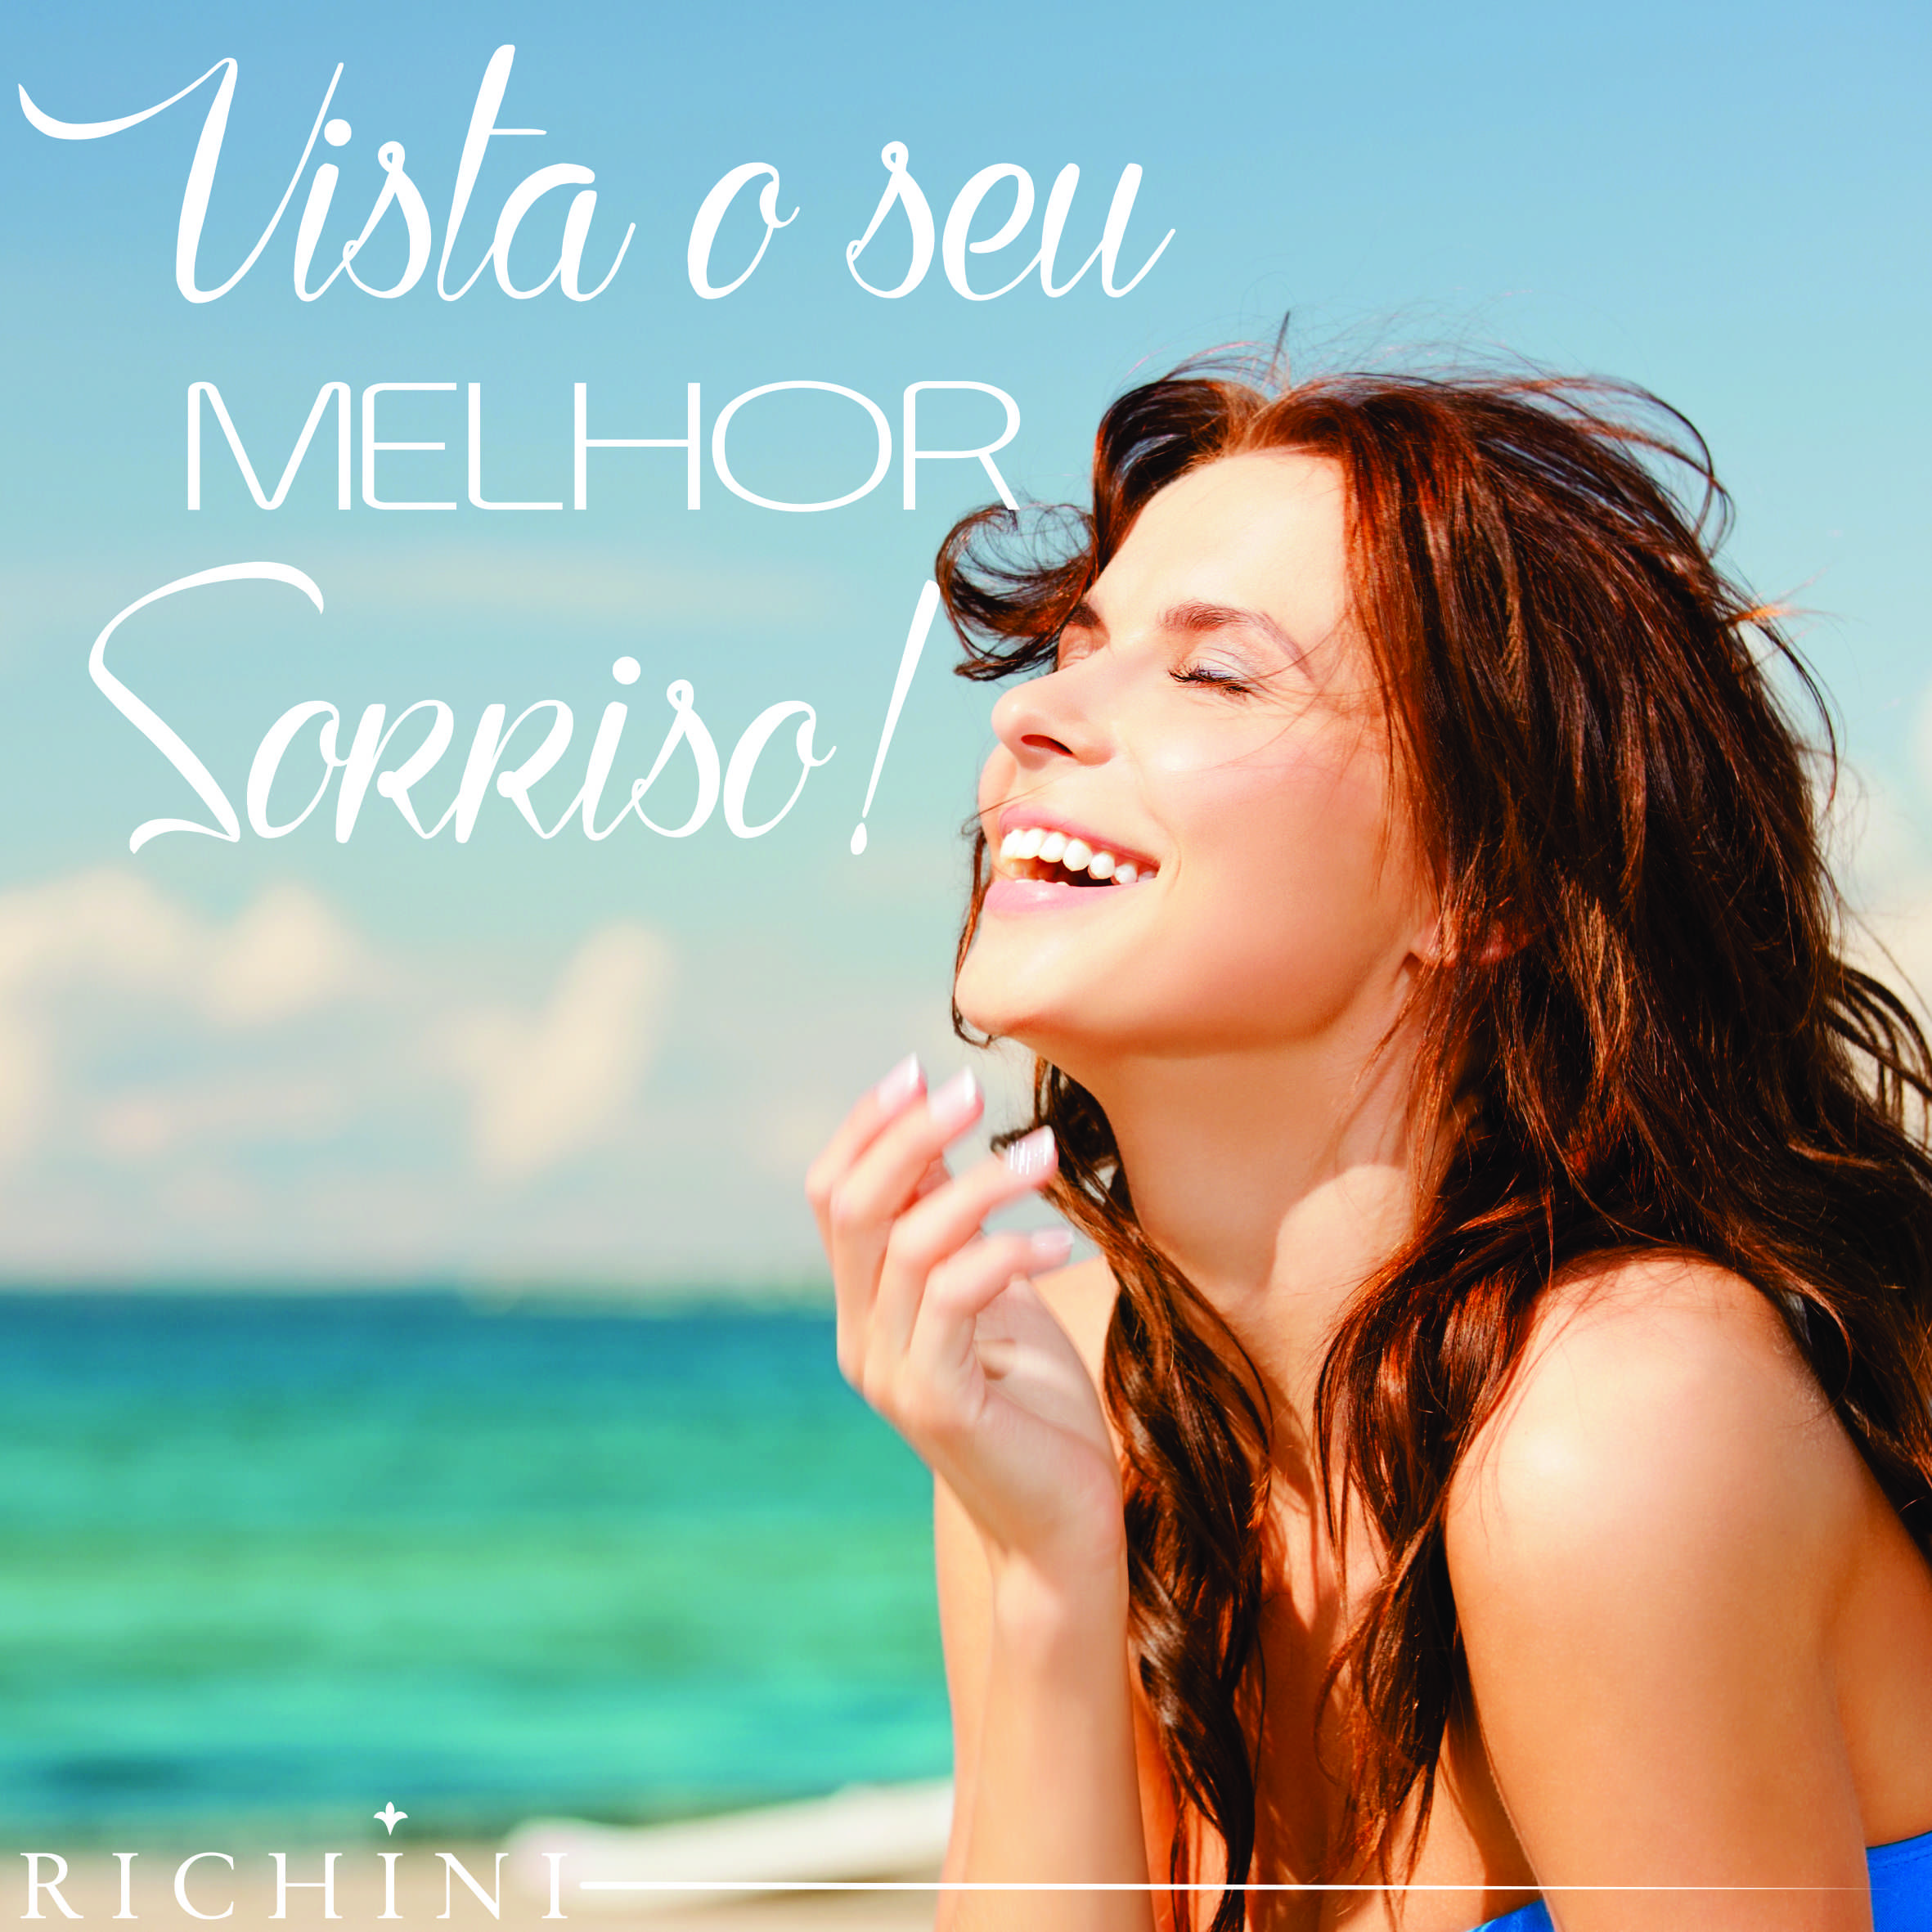 Vista o seu melhor sorriso! #inspirarichini #quotes #goodmorning #phrases #daybyday #morning #inspiration